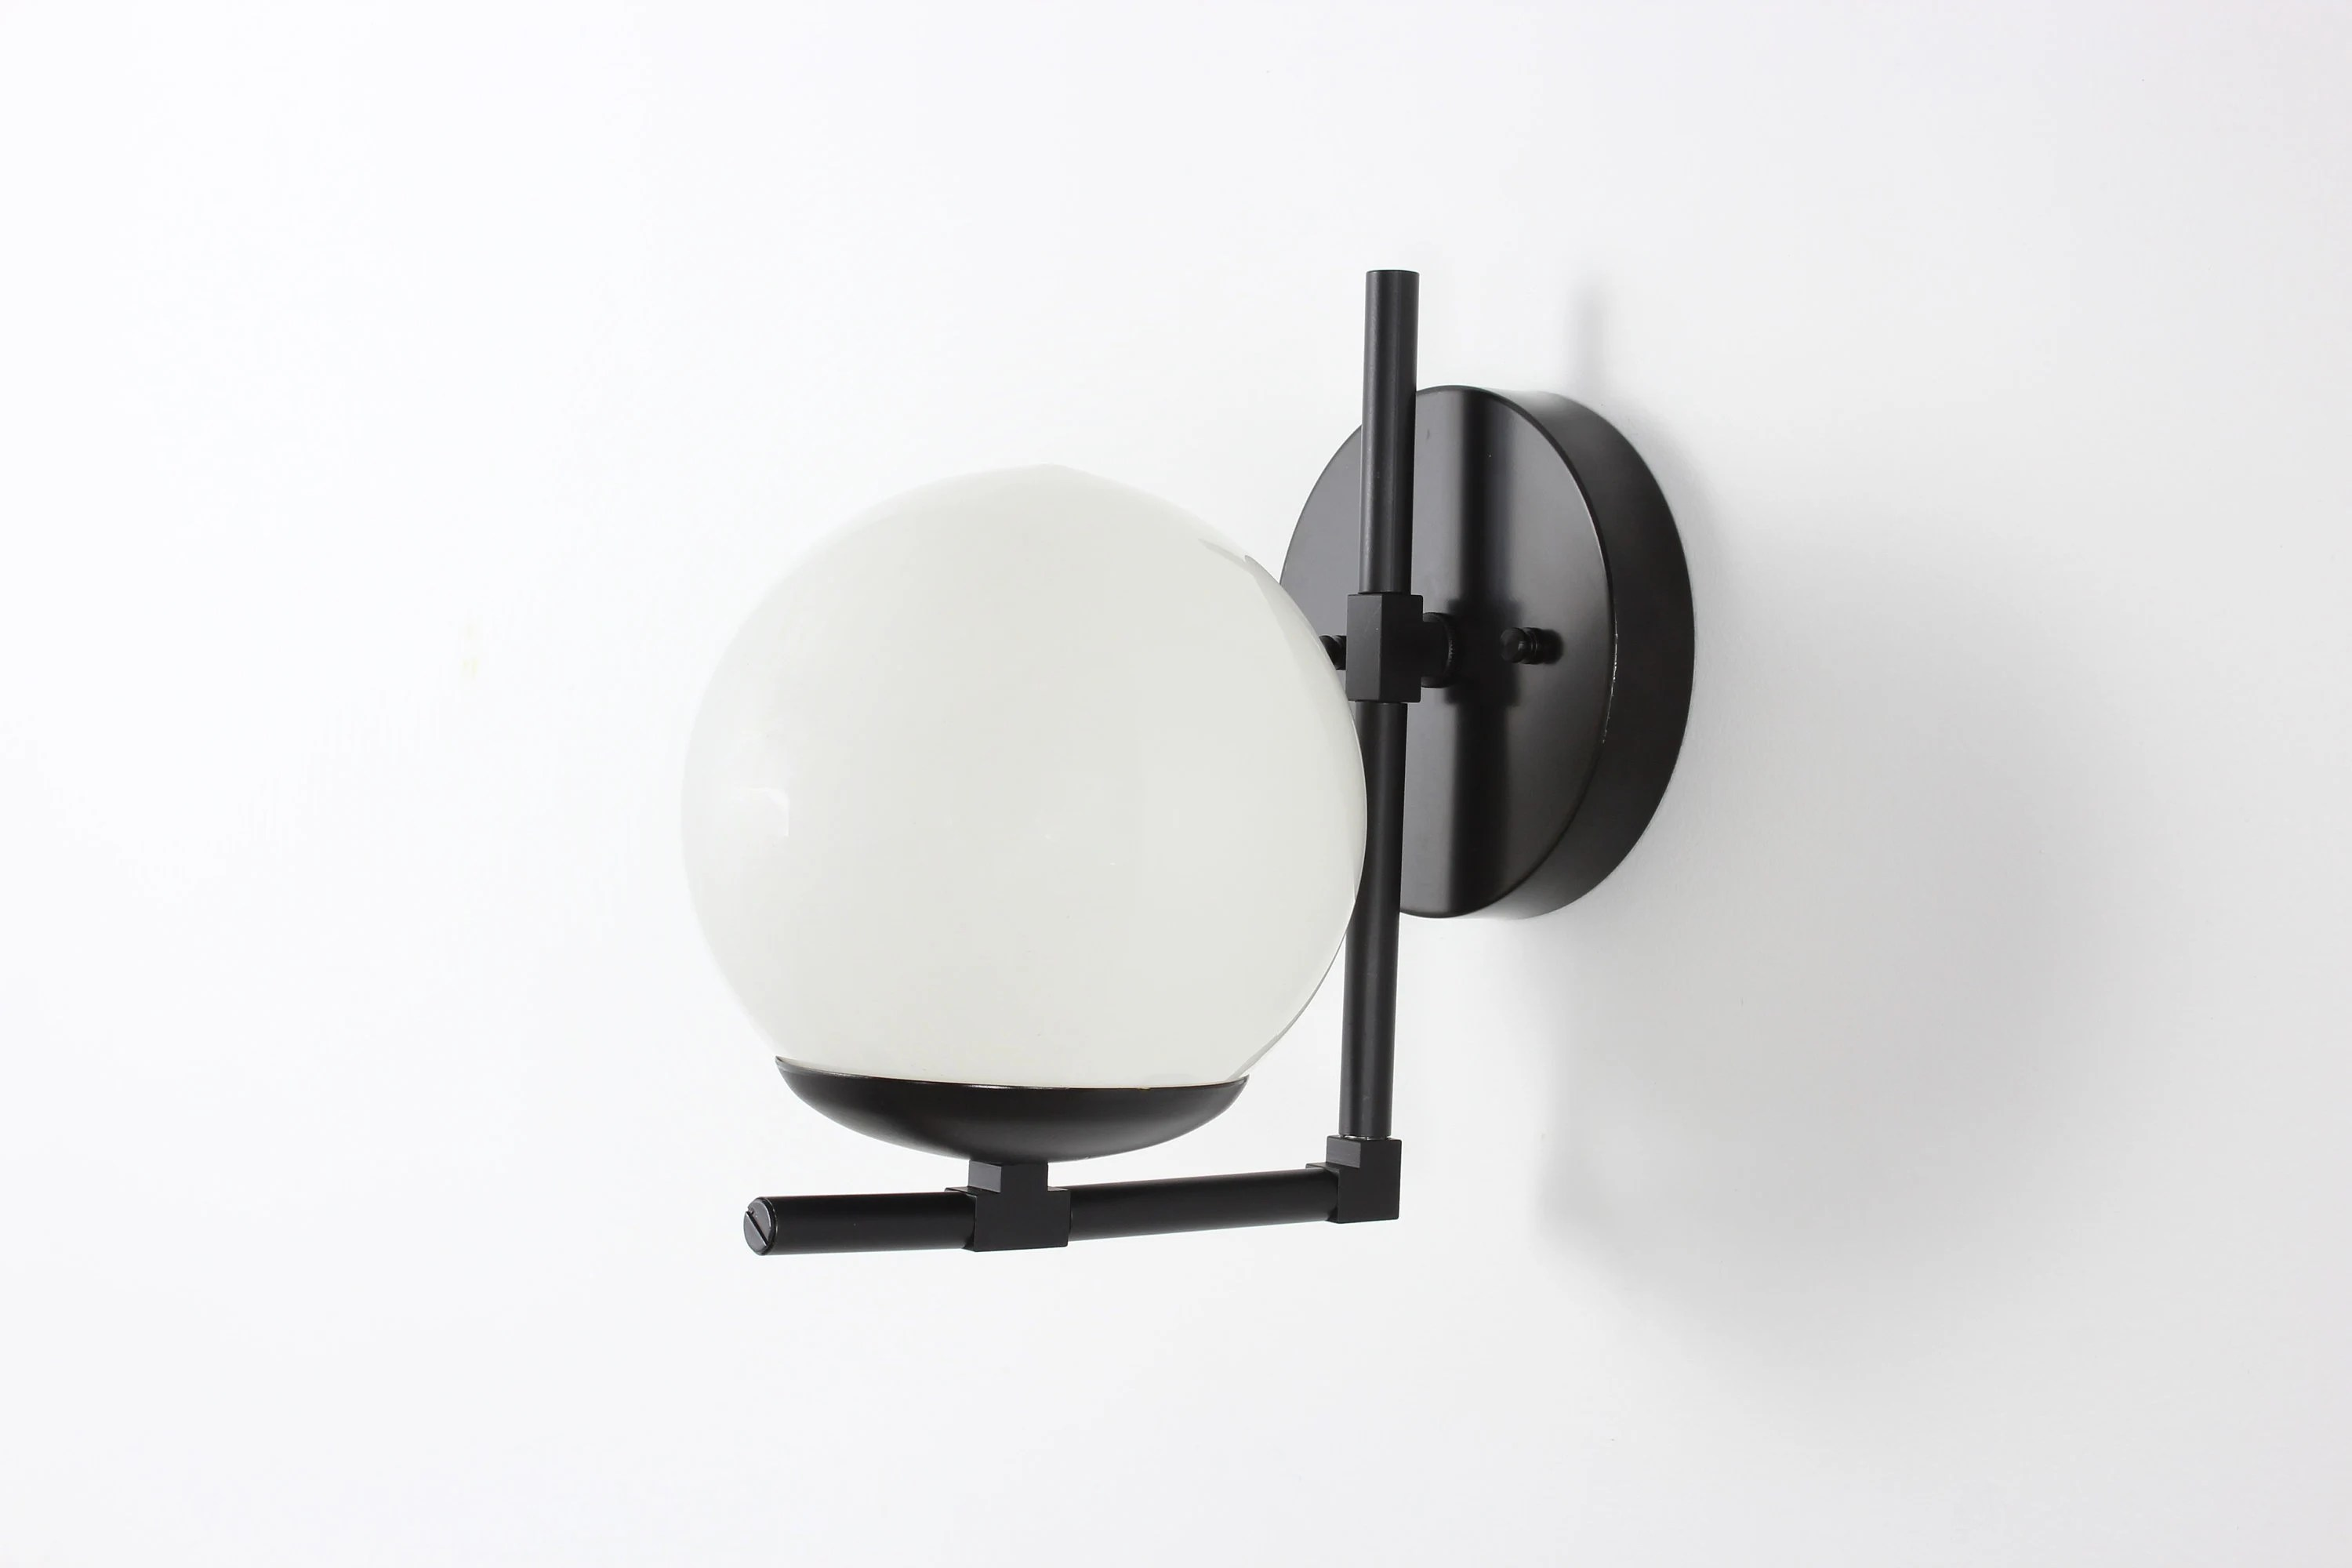 Modern Lighting Quotes Modern Globe Sconce Black Wall Sconce Glass Globe Sconce Mid Century Wall Light Modern Lighting Bathroom Vanity Vanity Lighting